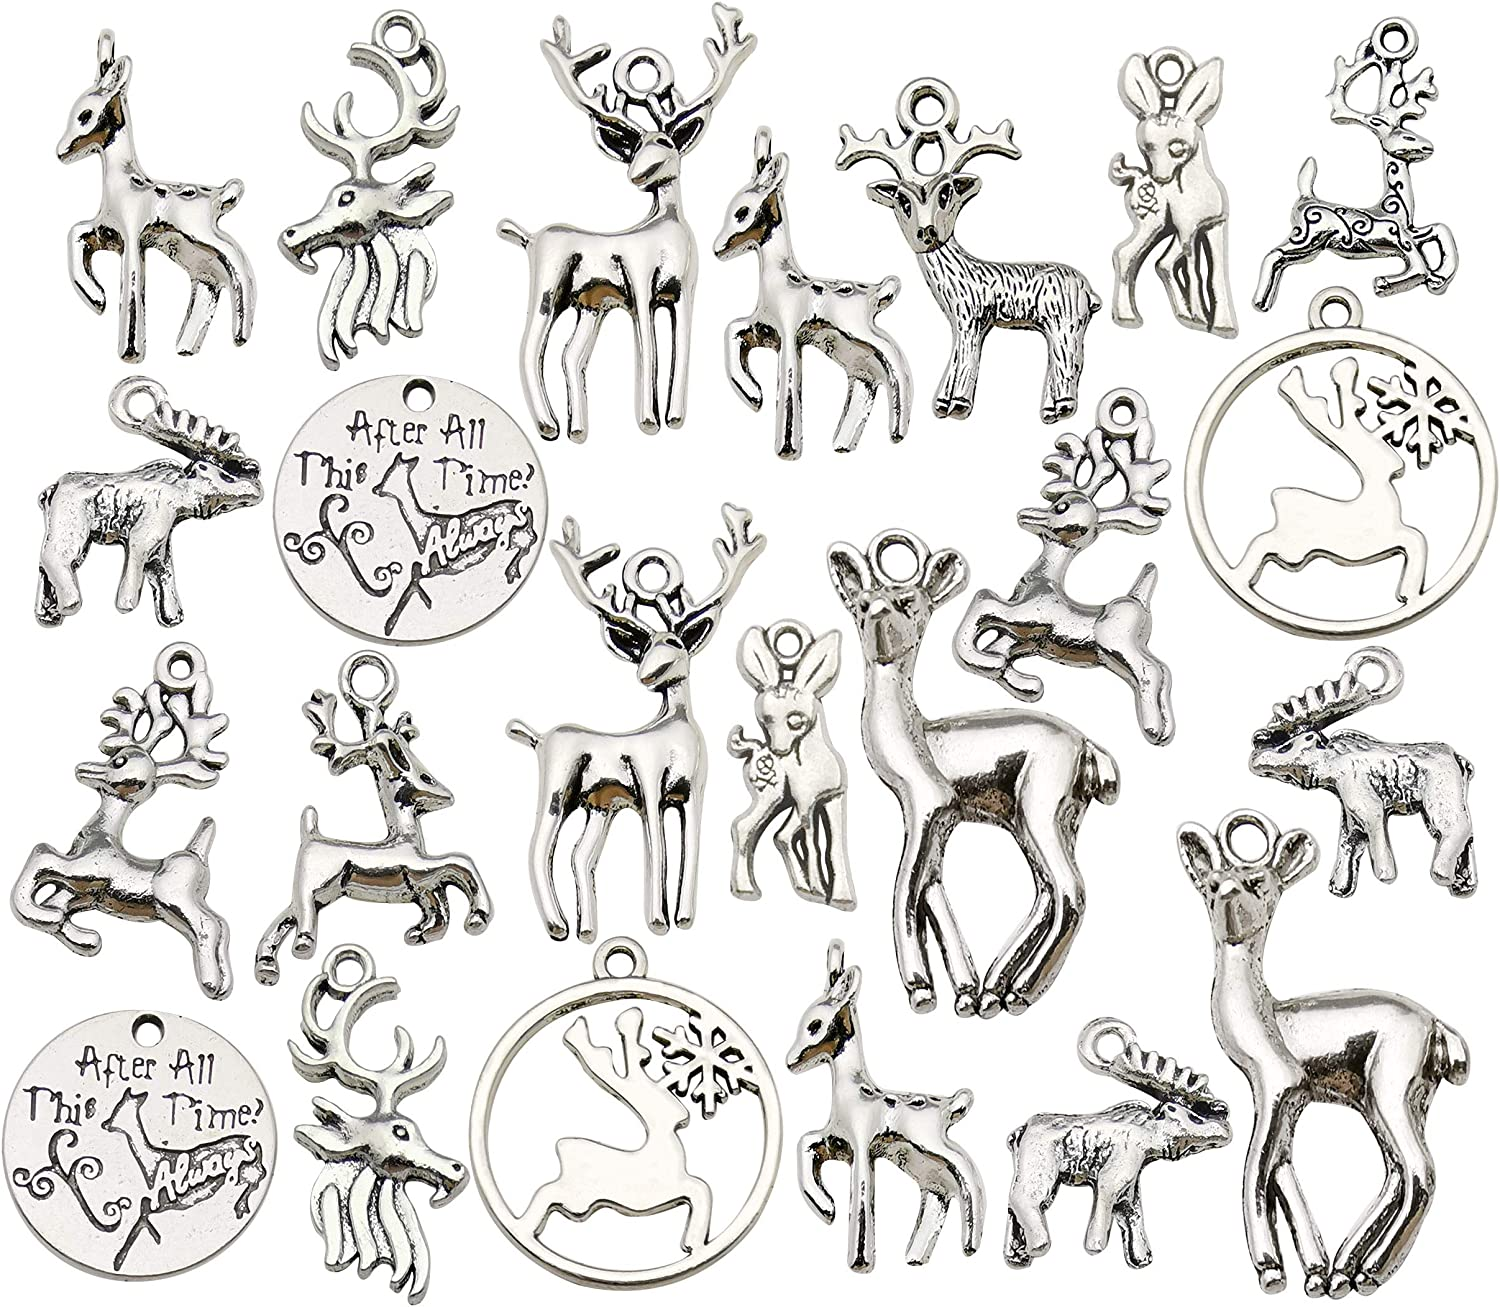 Wholesale Bulk Lots Christmas Animal Elk Deer Charms for Jewelry Making Mixed Smooth Tibetan Silver Metal Charms Pendants DIY For Jewelry Making Necklace Bracelet and Crafting 60pcs 100g M366